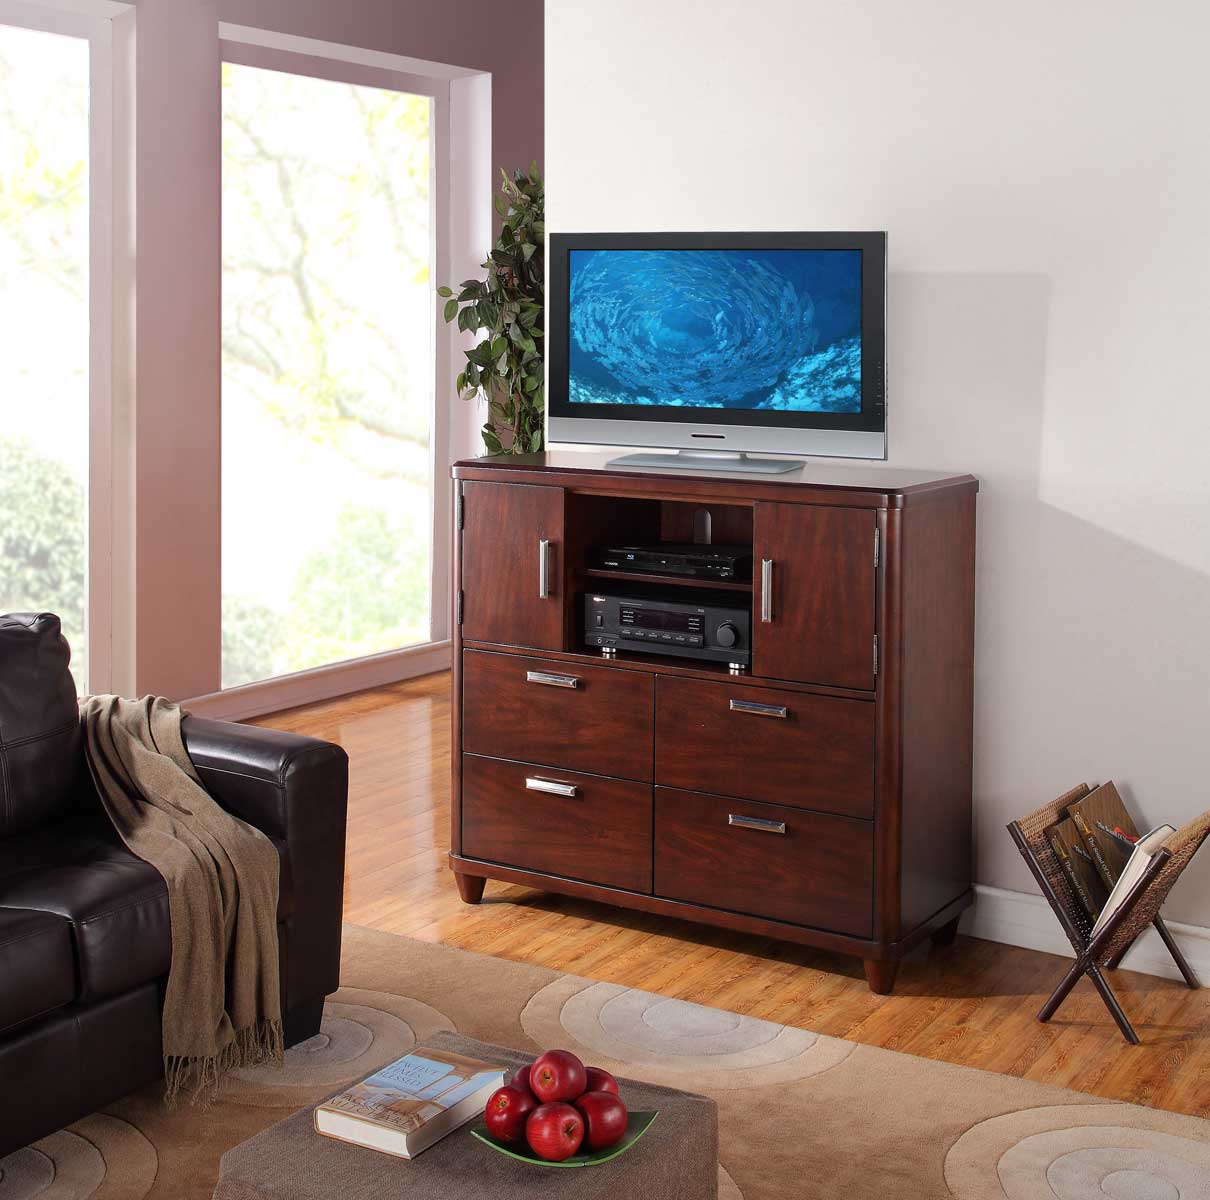 Homelegance Beaumont TV Chest - Brown Cherry